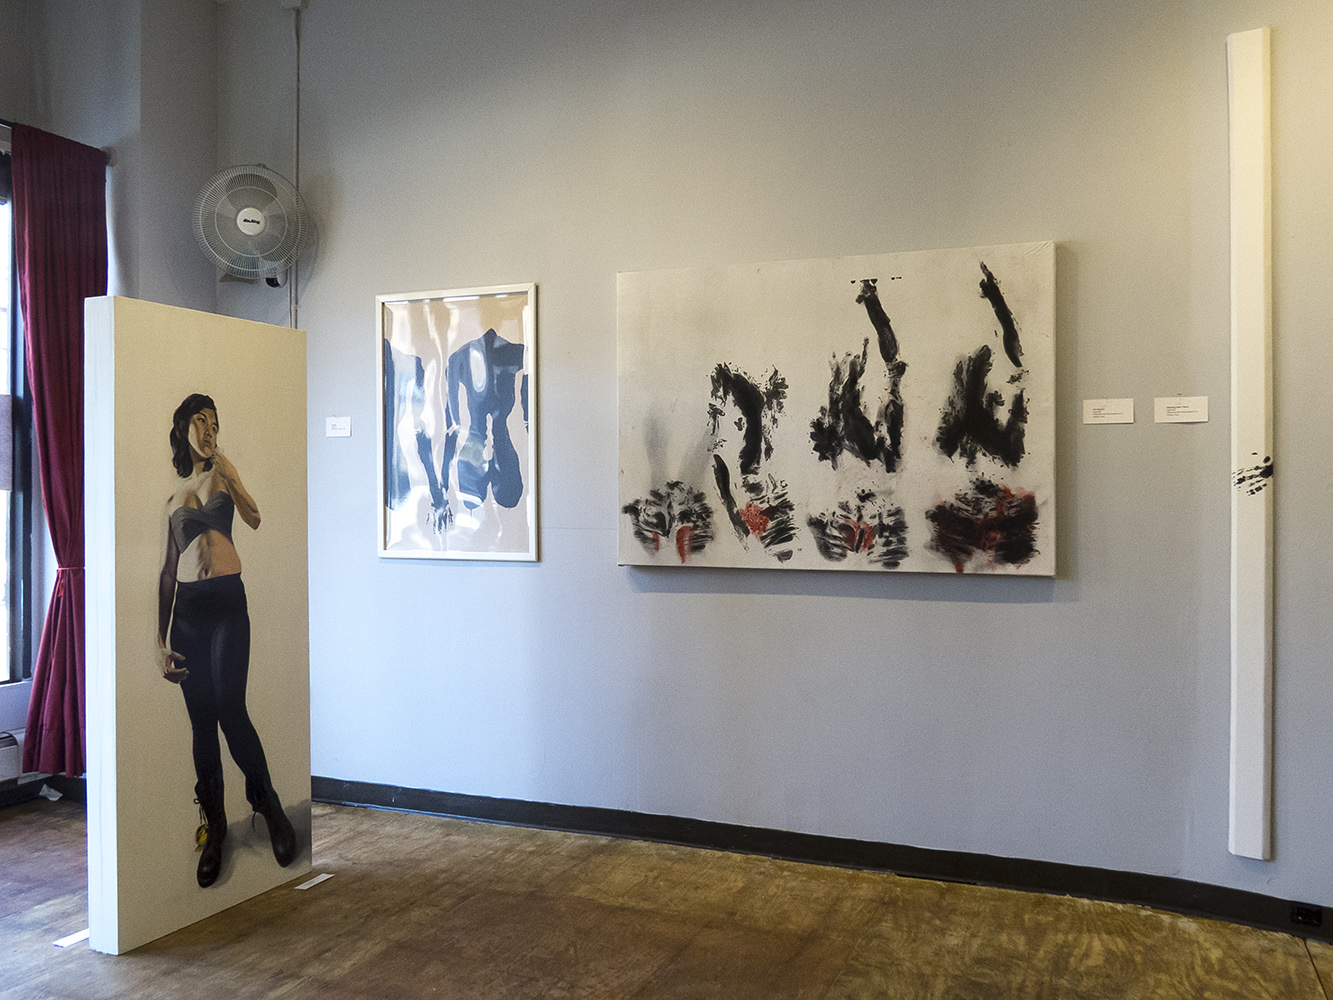 Installation view at Shoestring Press